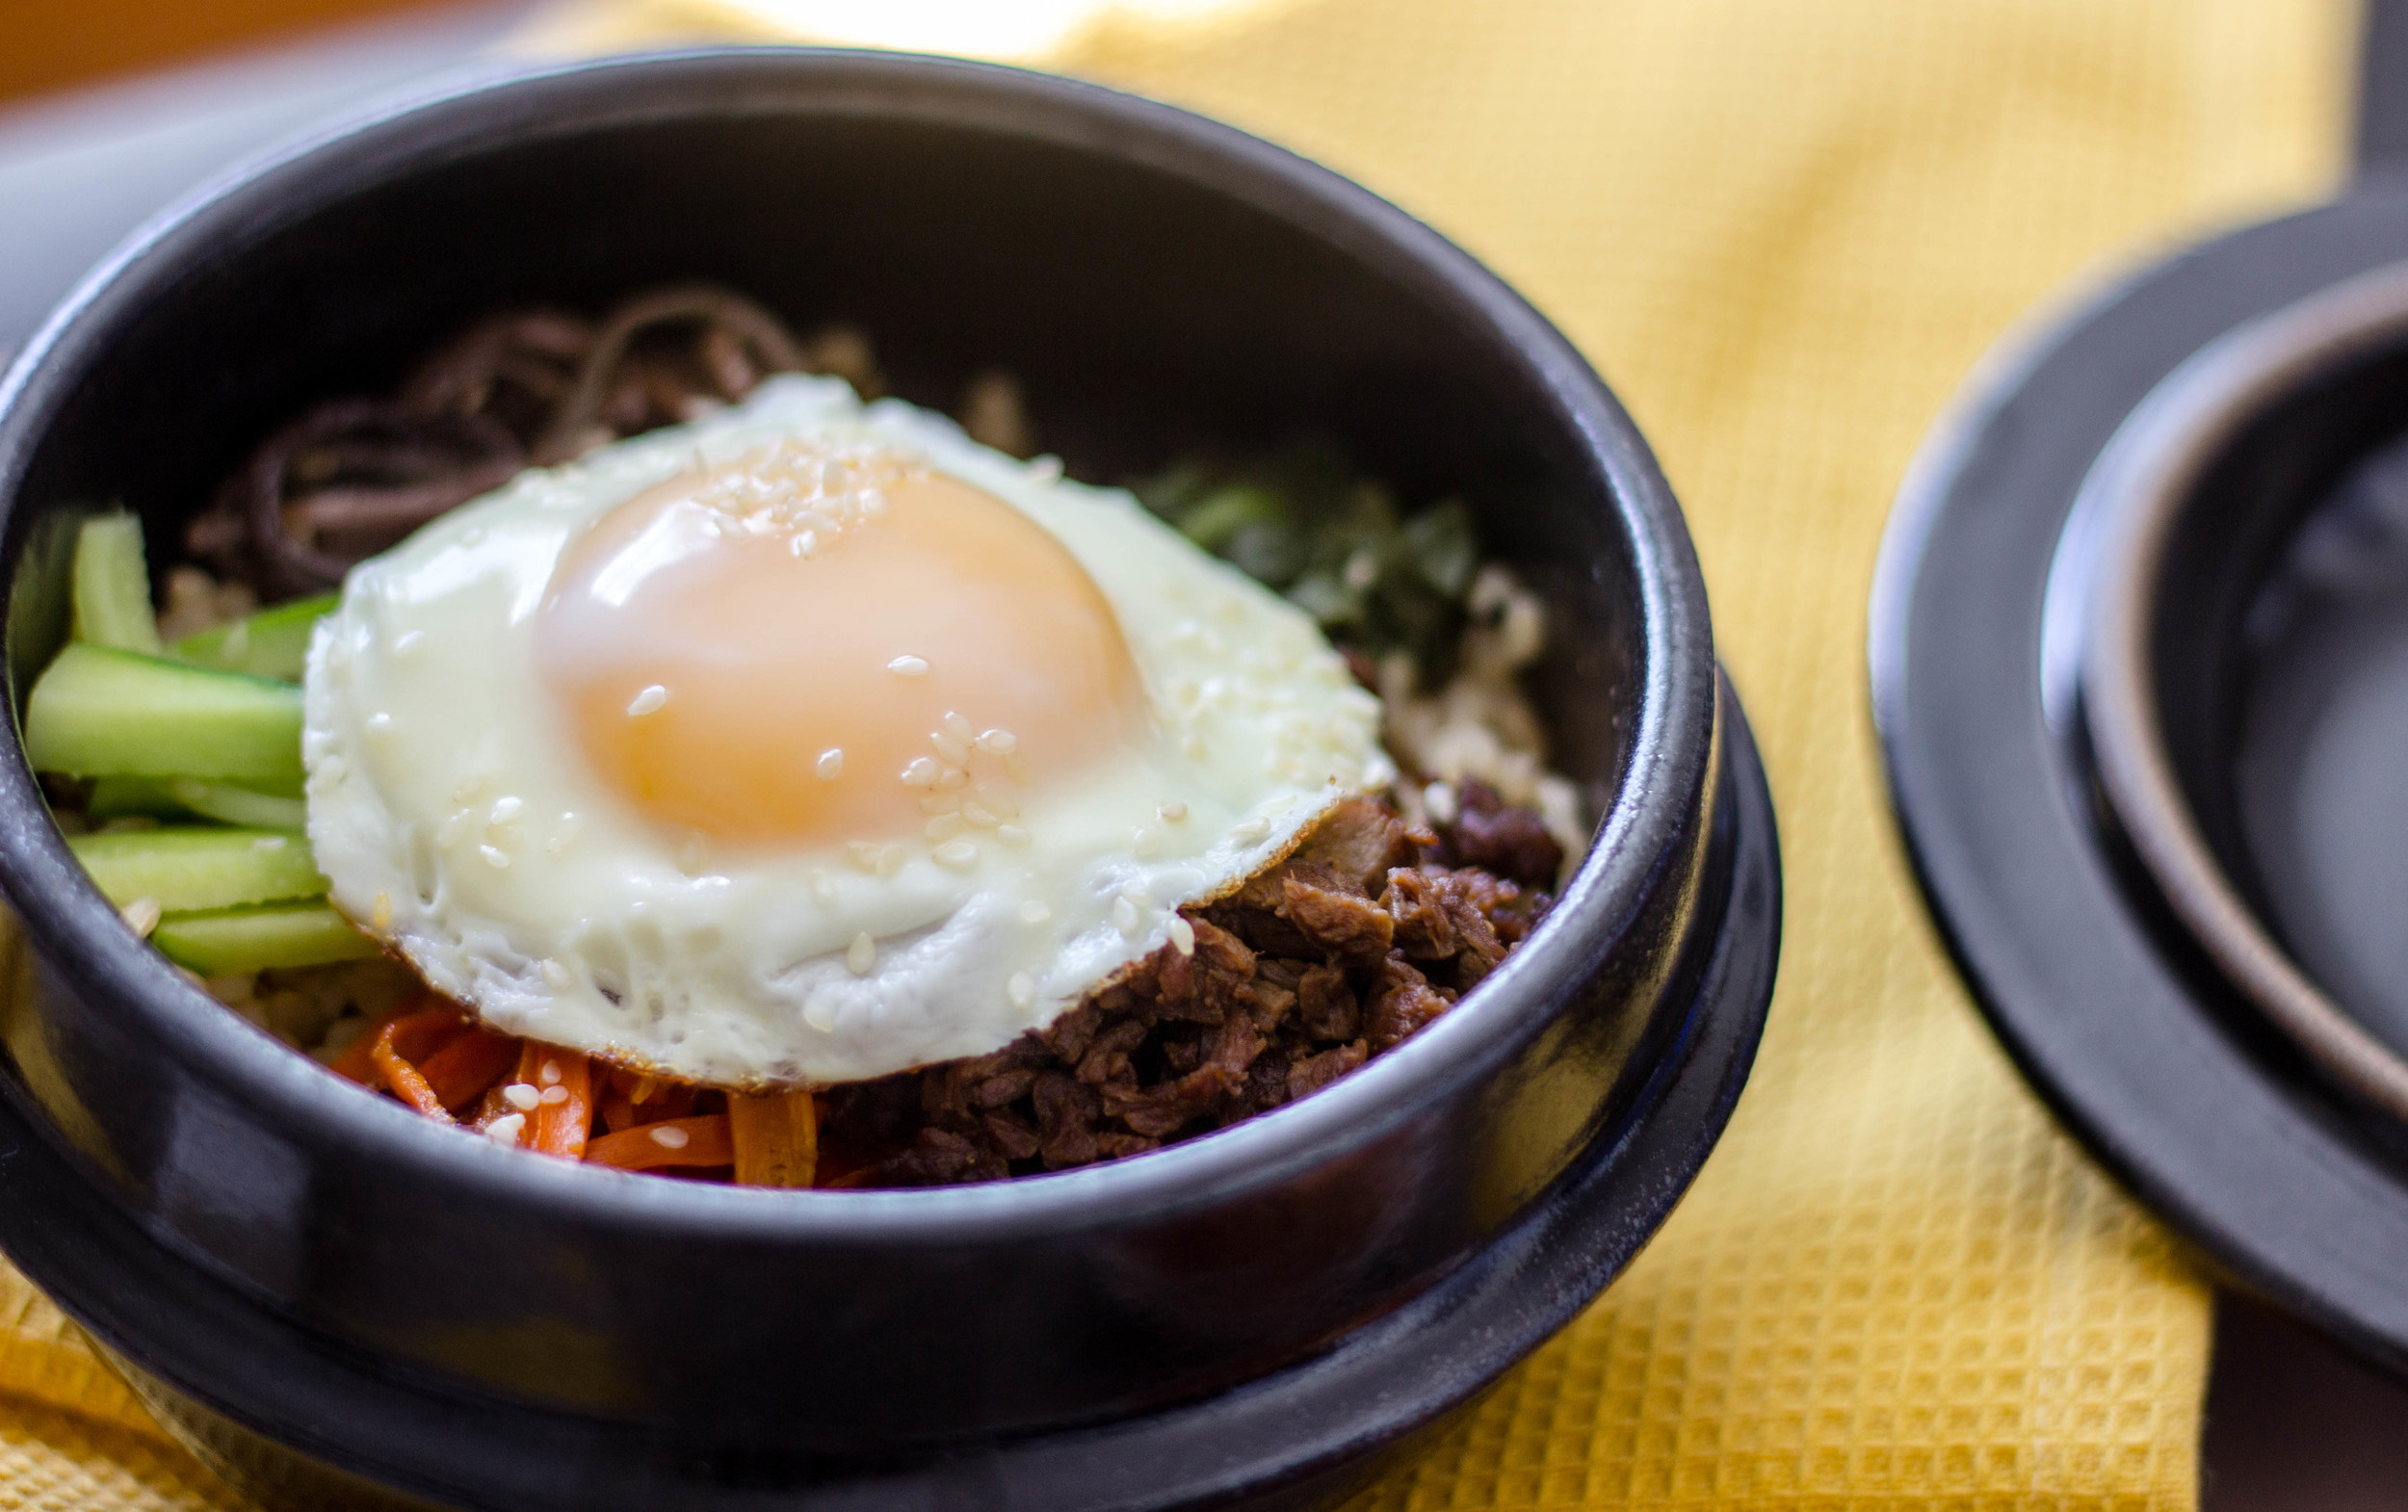 homemade-stonepot-korean-bibimbap2.jpg